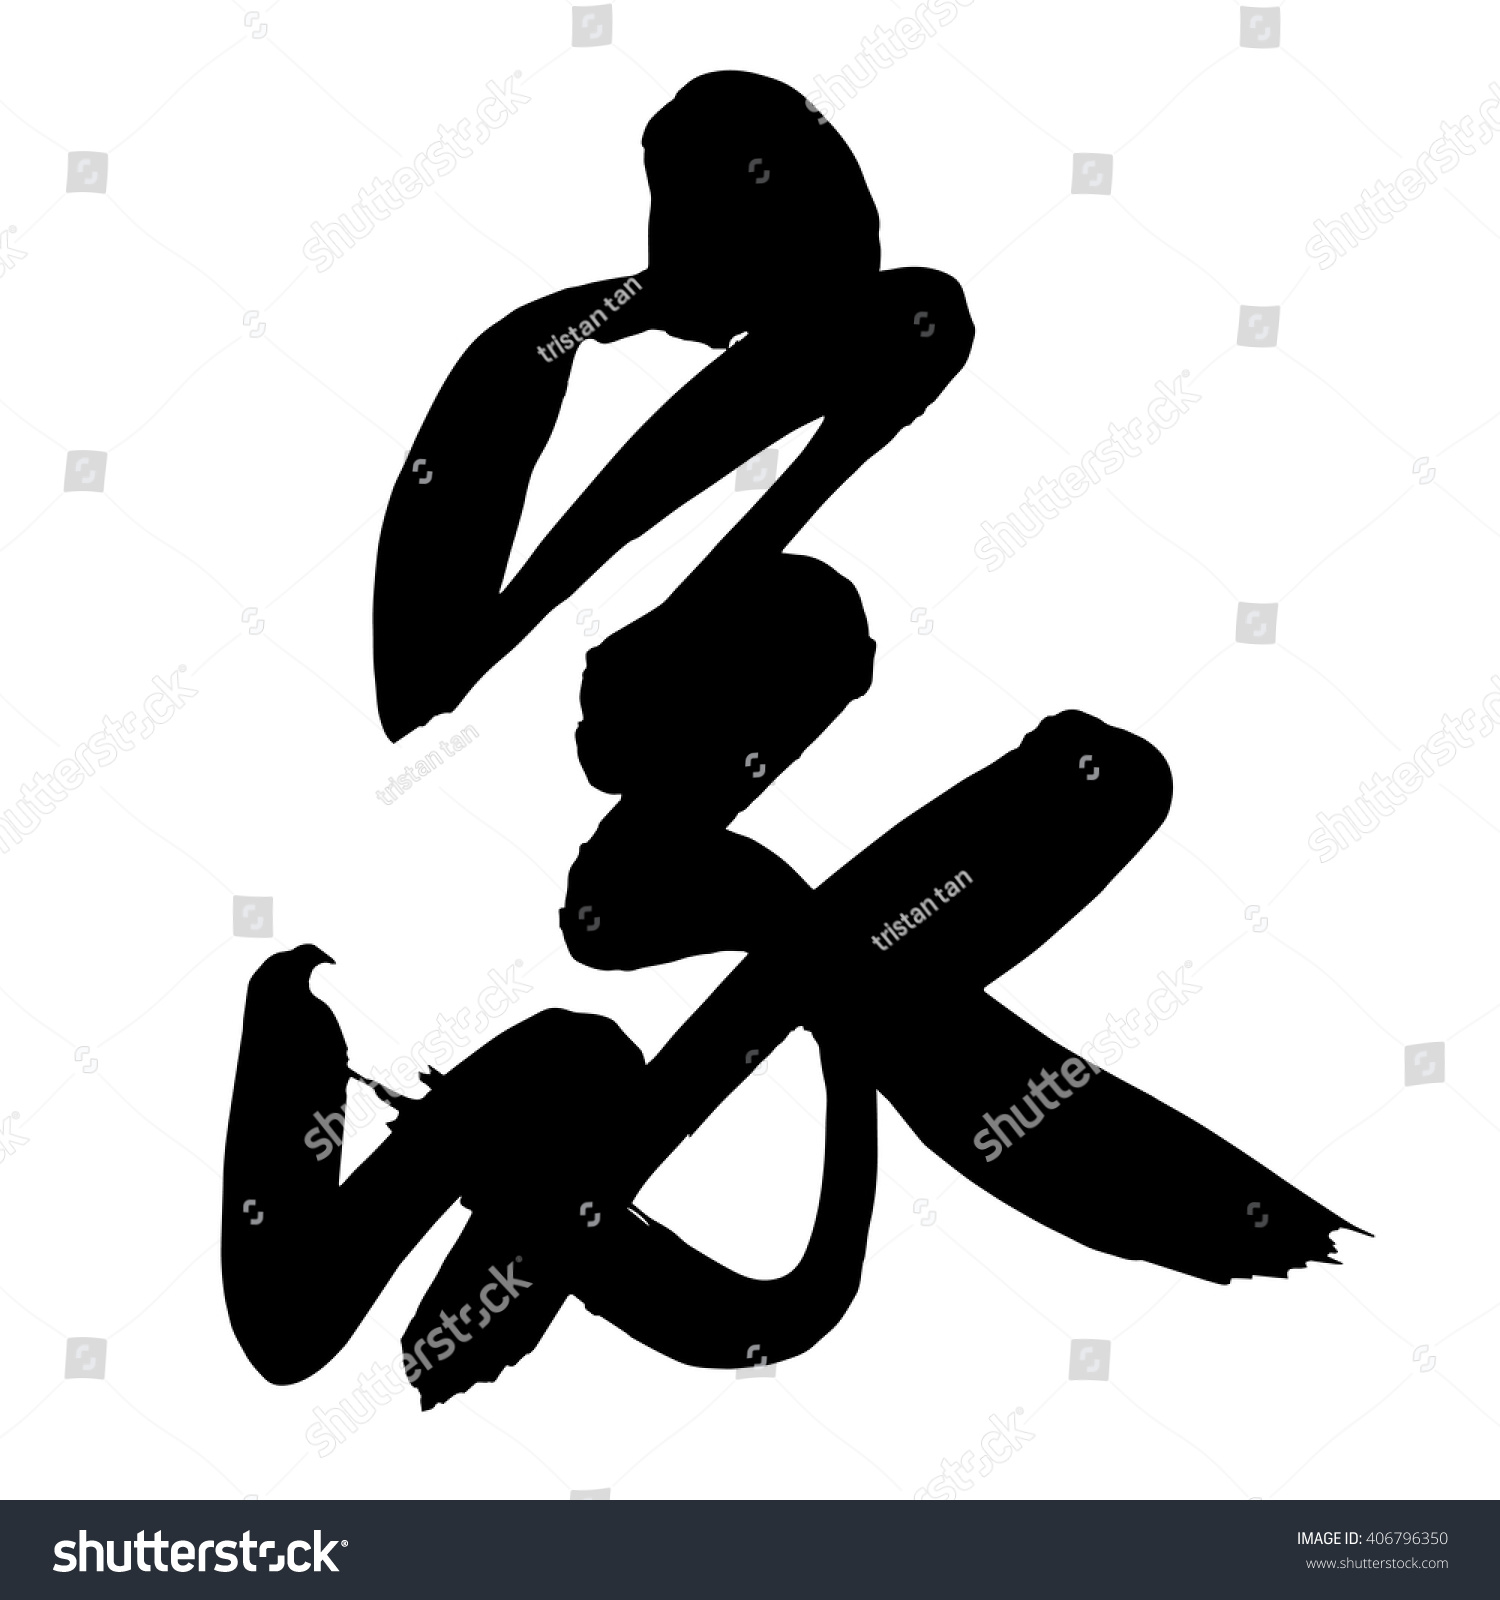 Chinese calligraphy jia translation home house stock